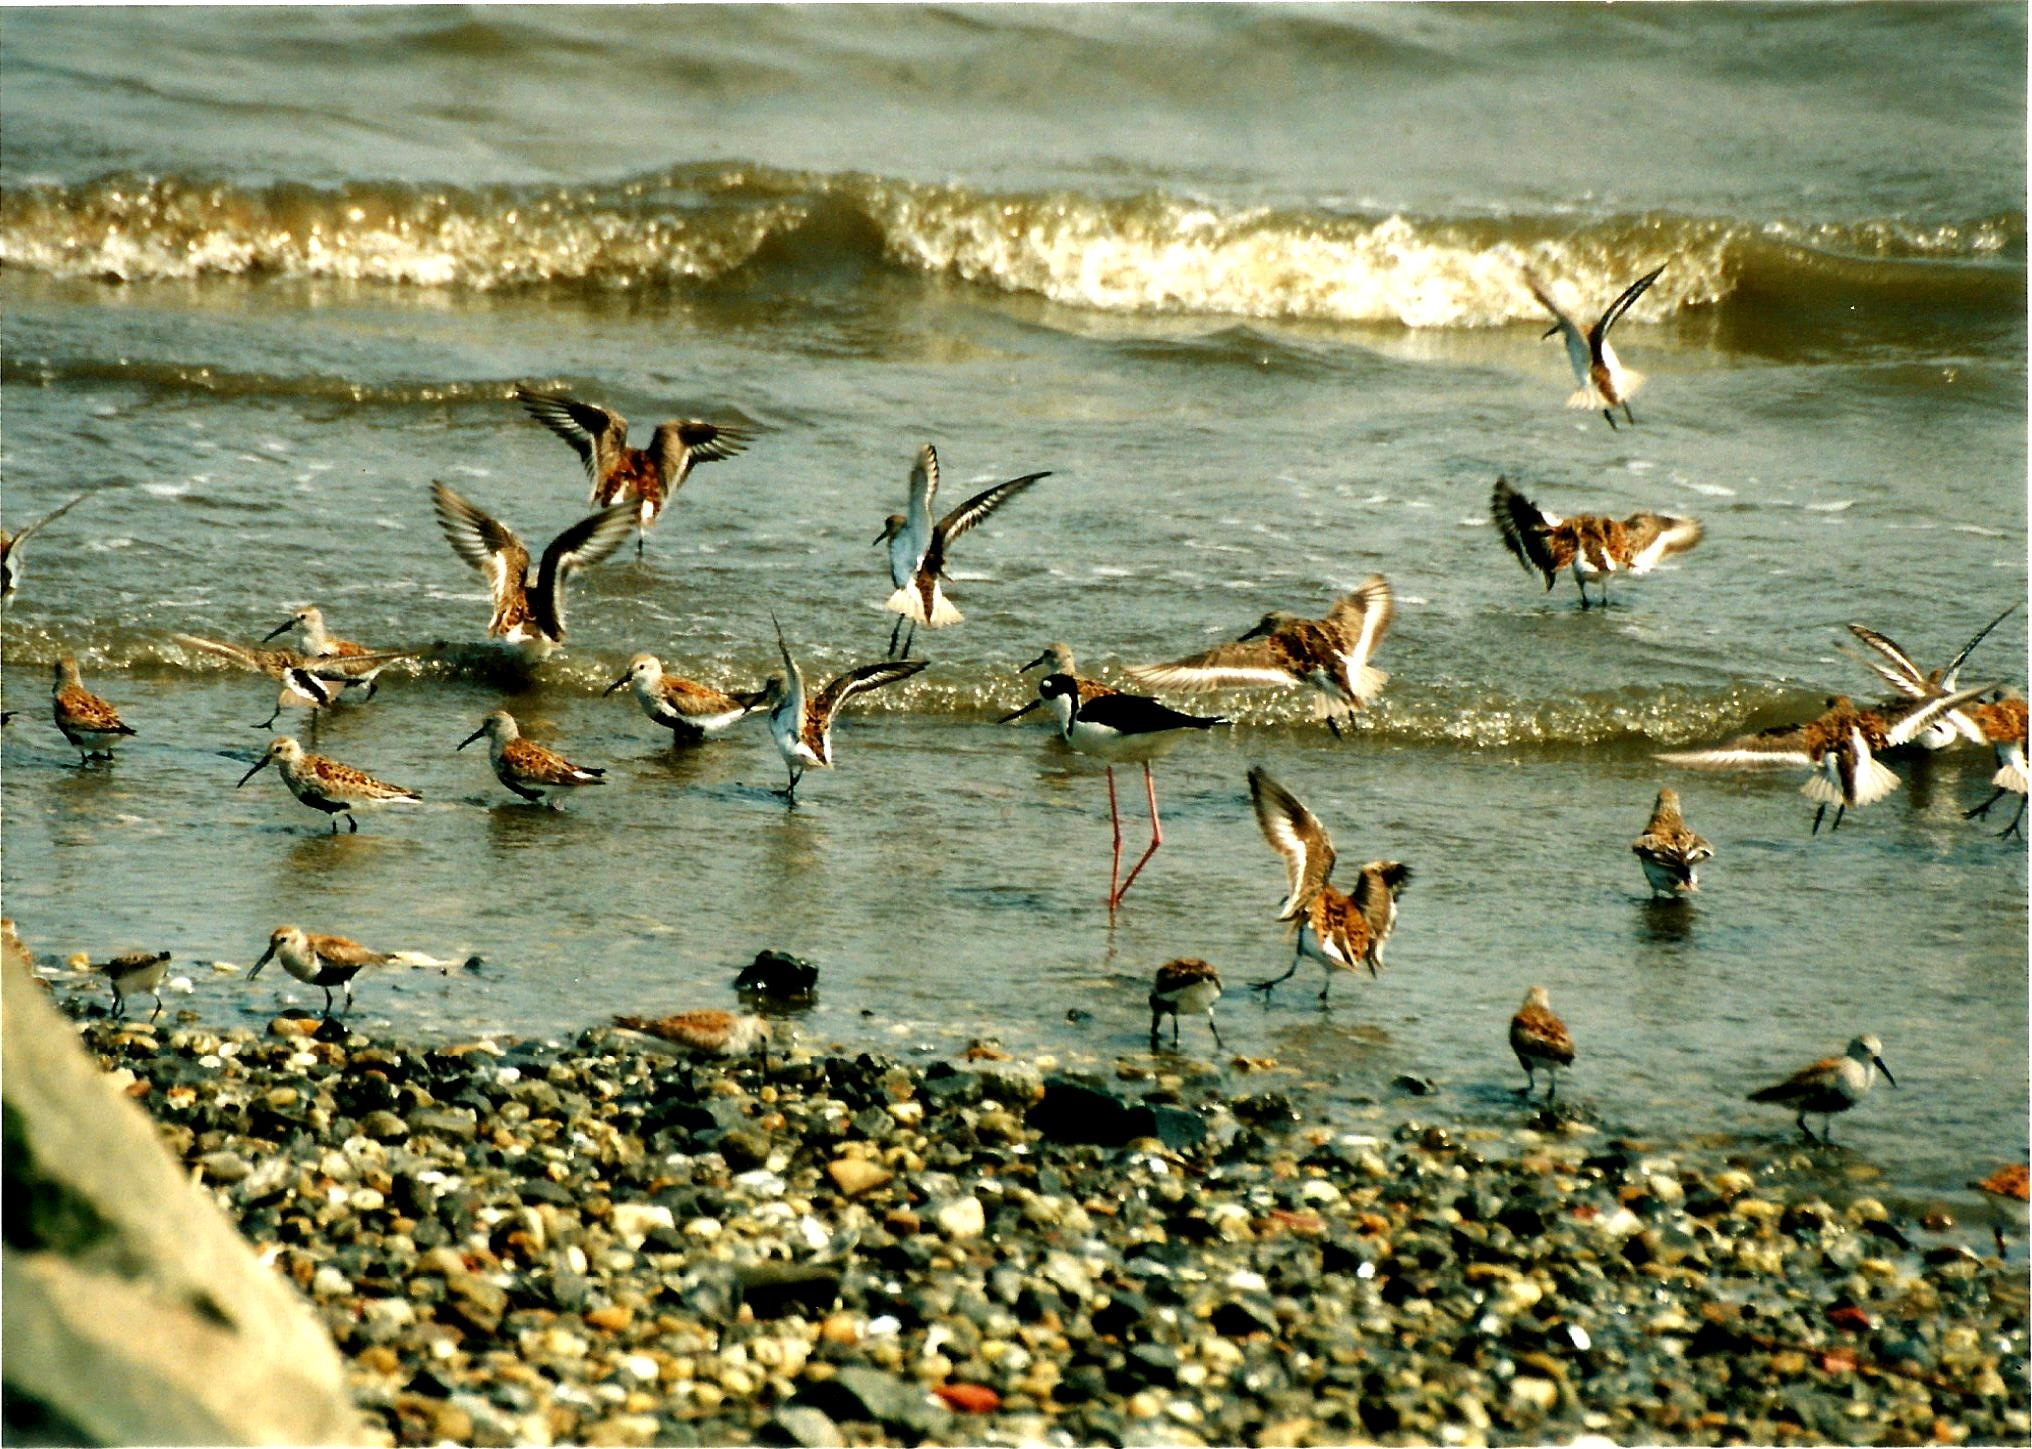 PORT MAYON'S SHOREBIRDS by Hope Atwood Dayhoff